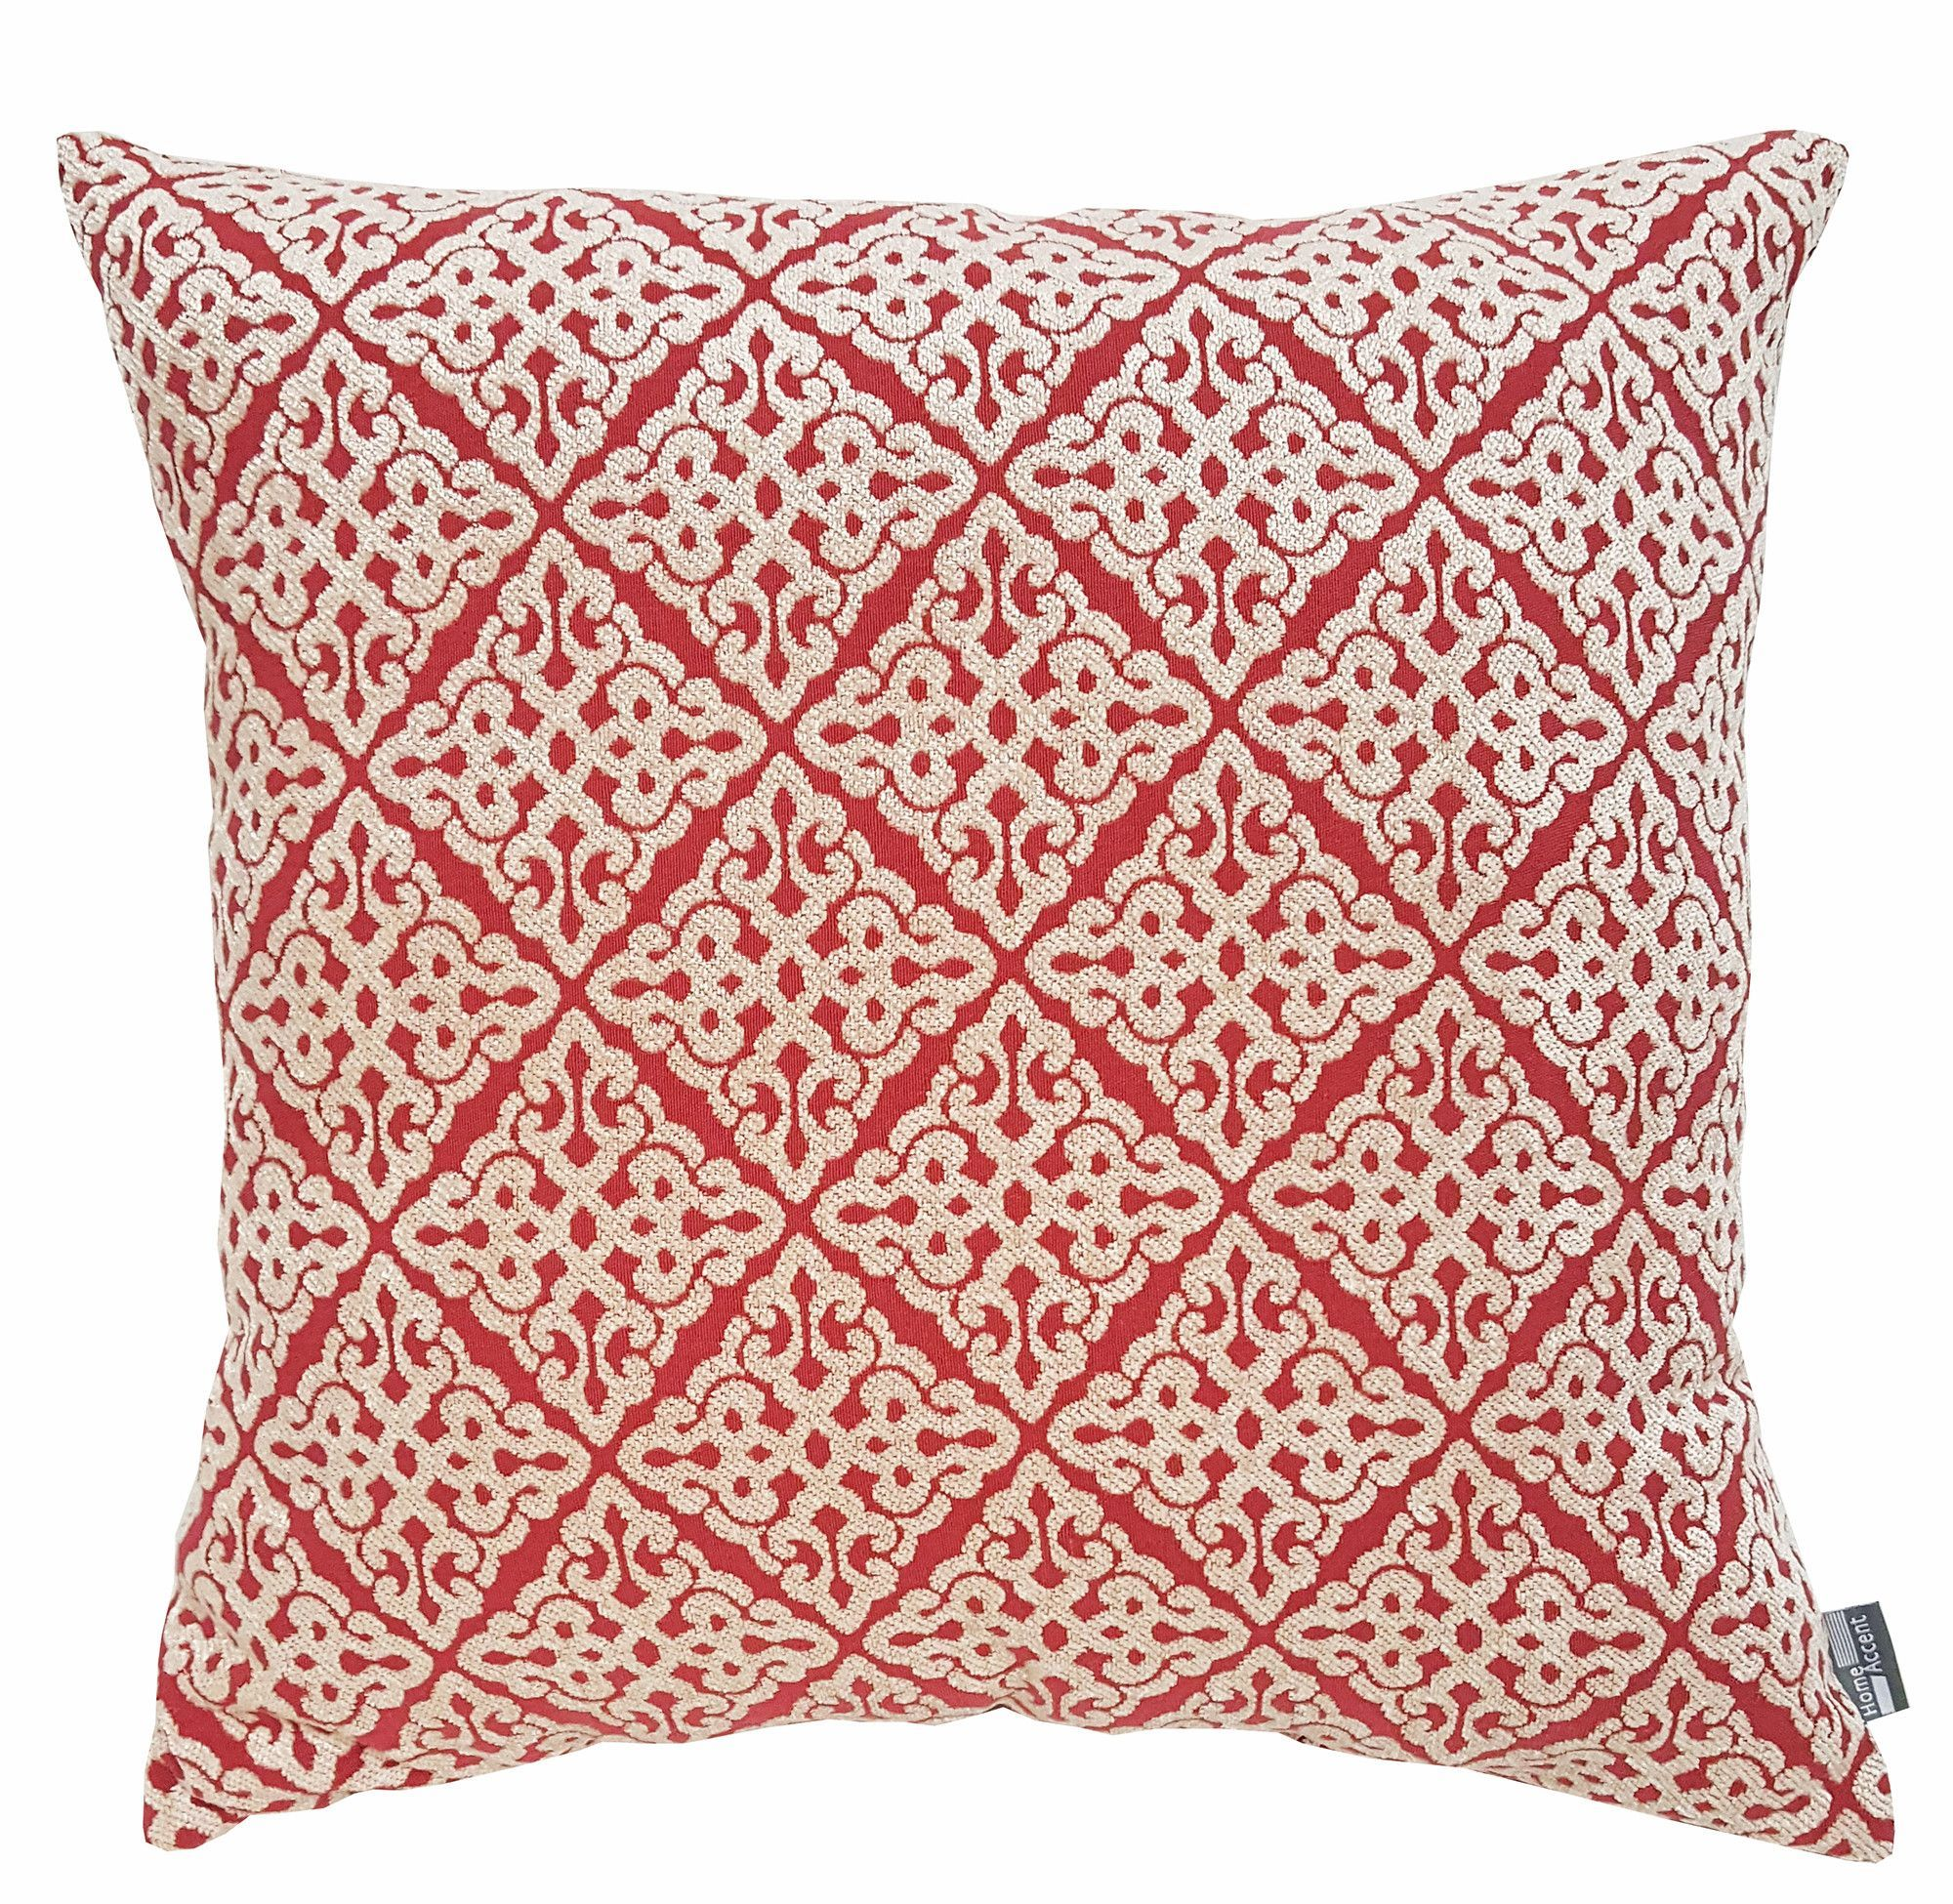 geo orange overstock throw garden corded perfect pillow free home of shipping polyester today product outdoor pillows new set